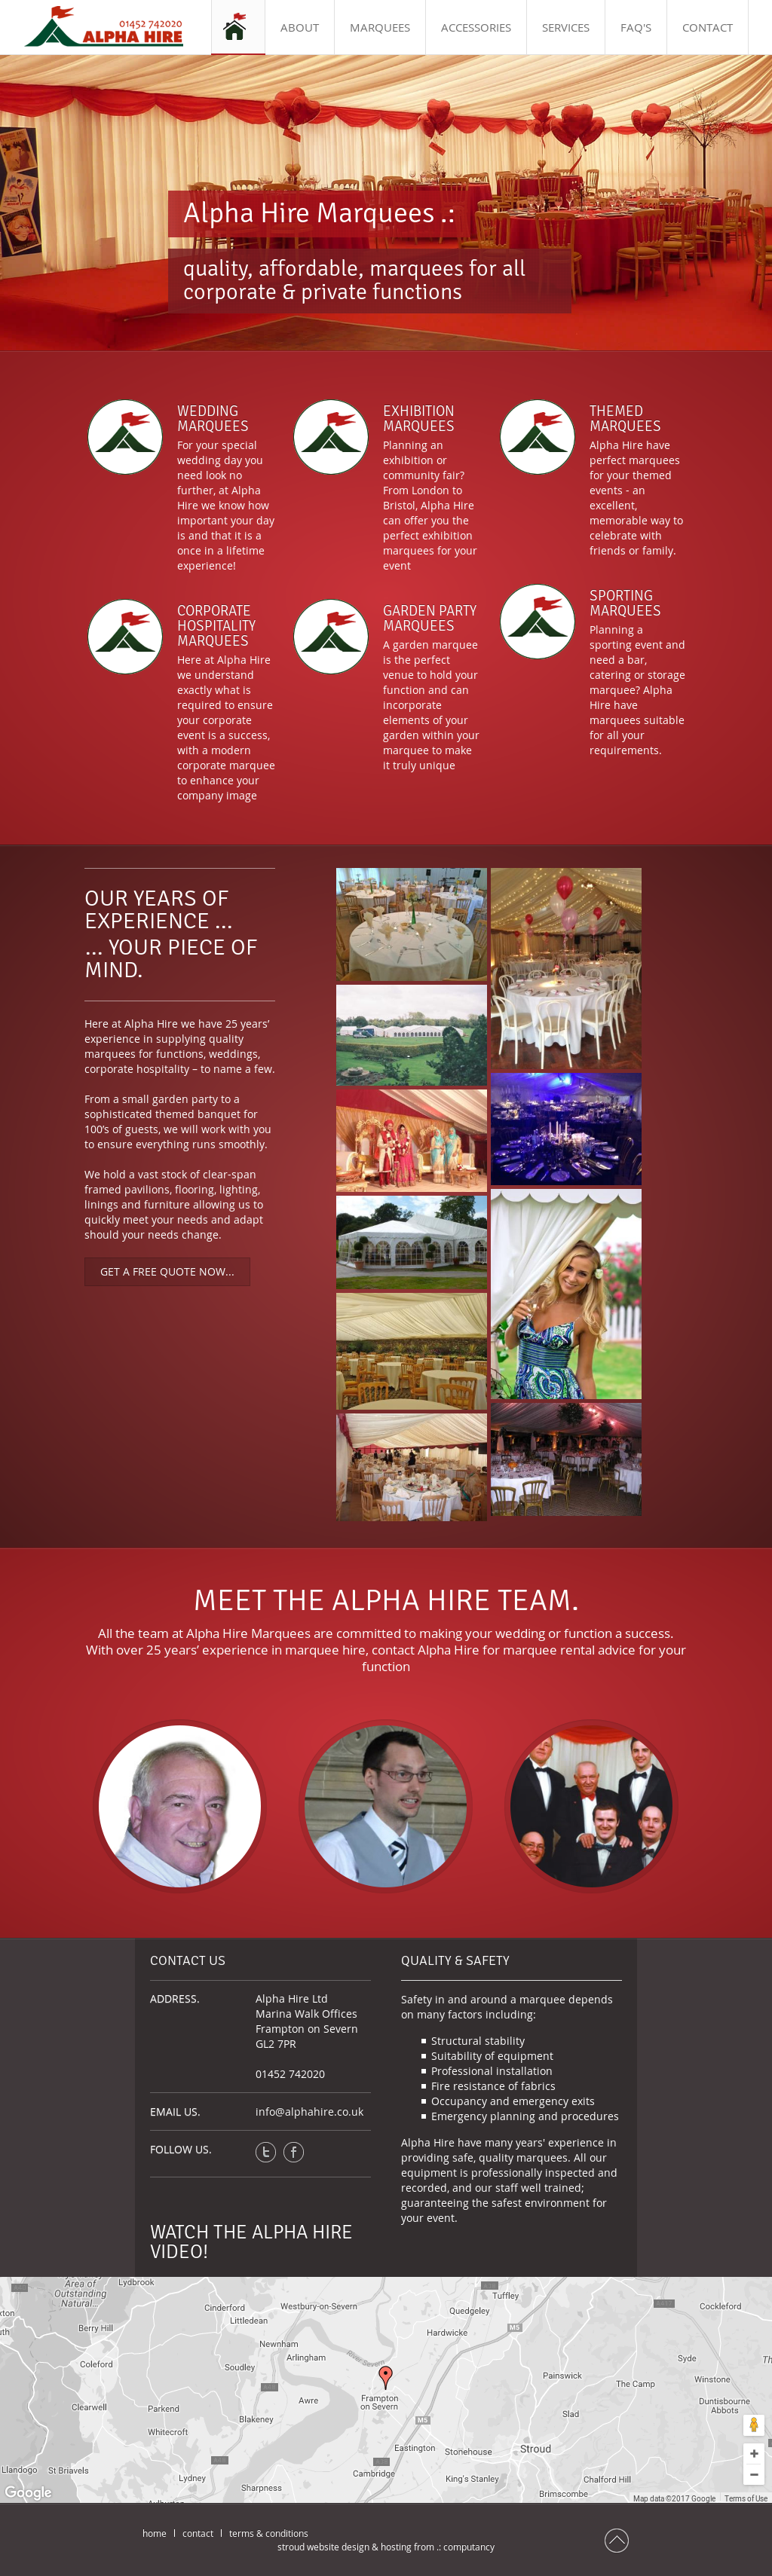 Alpha Hire Marquees Competitors, Revenue and Employees